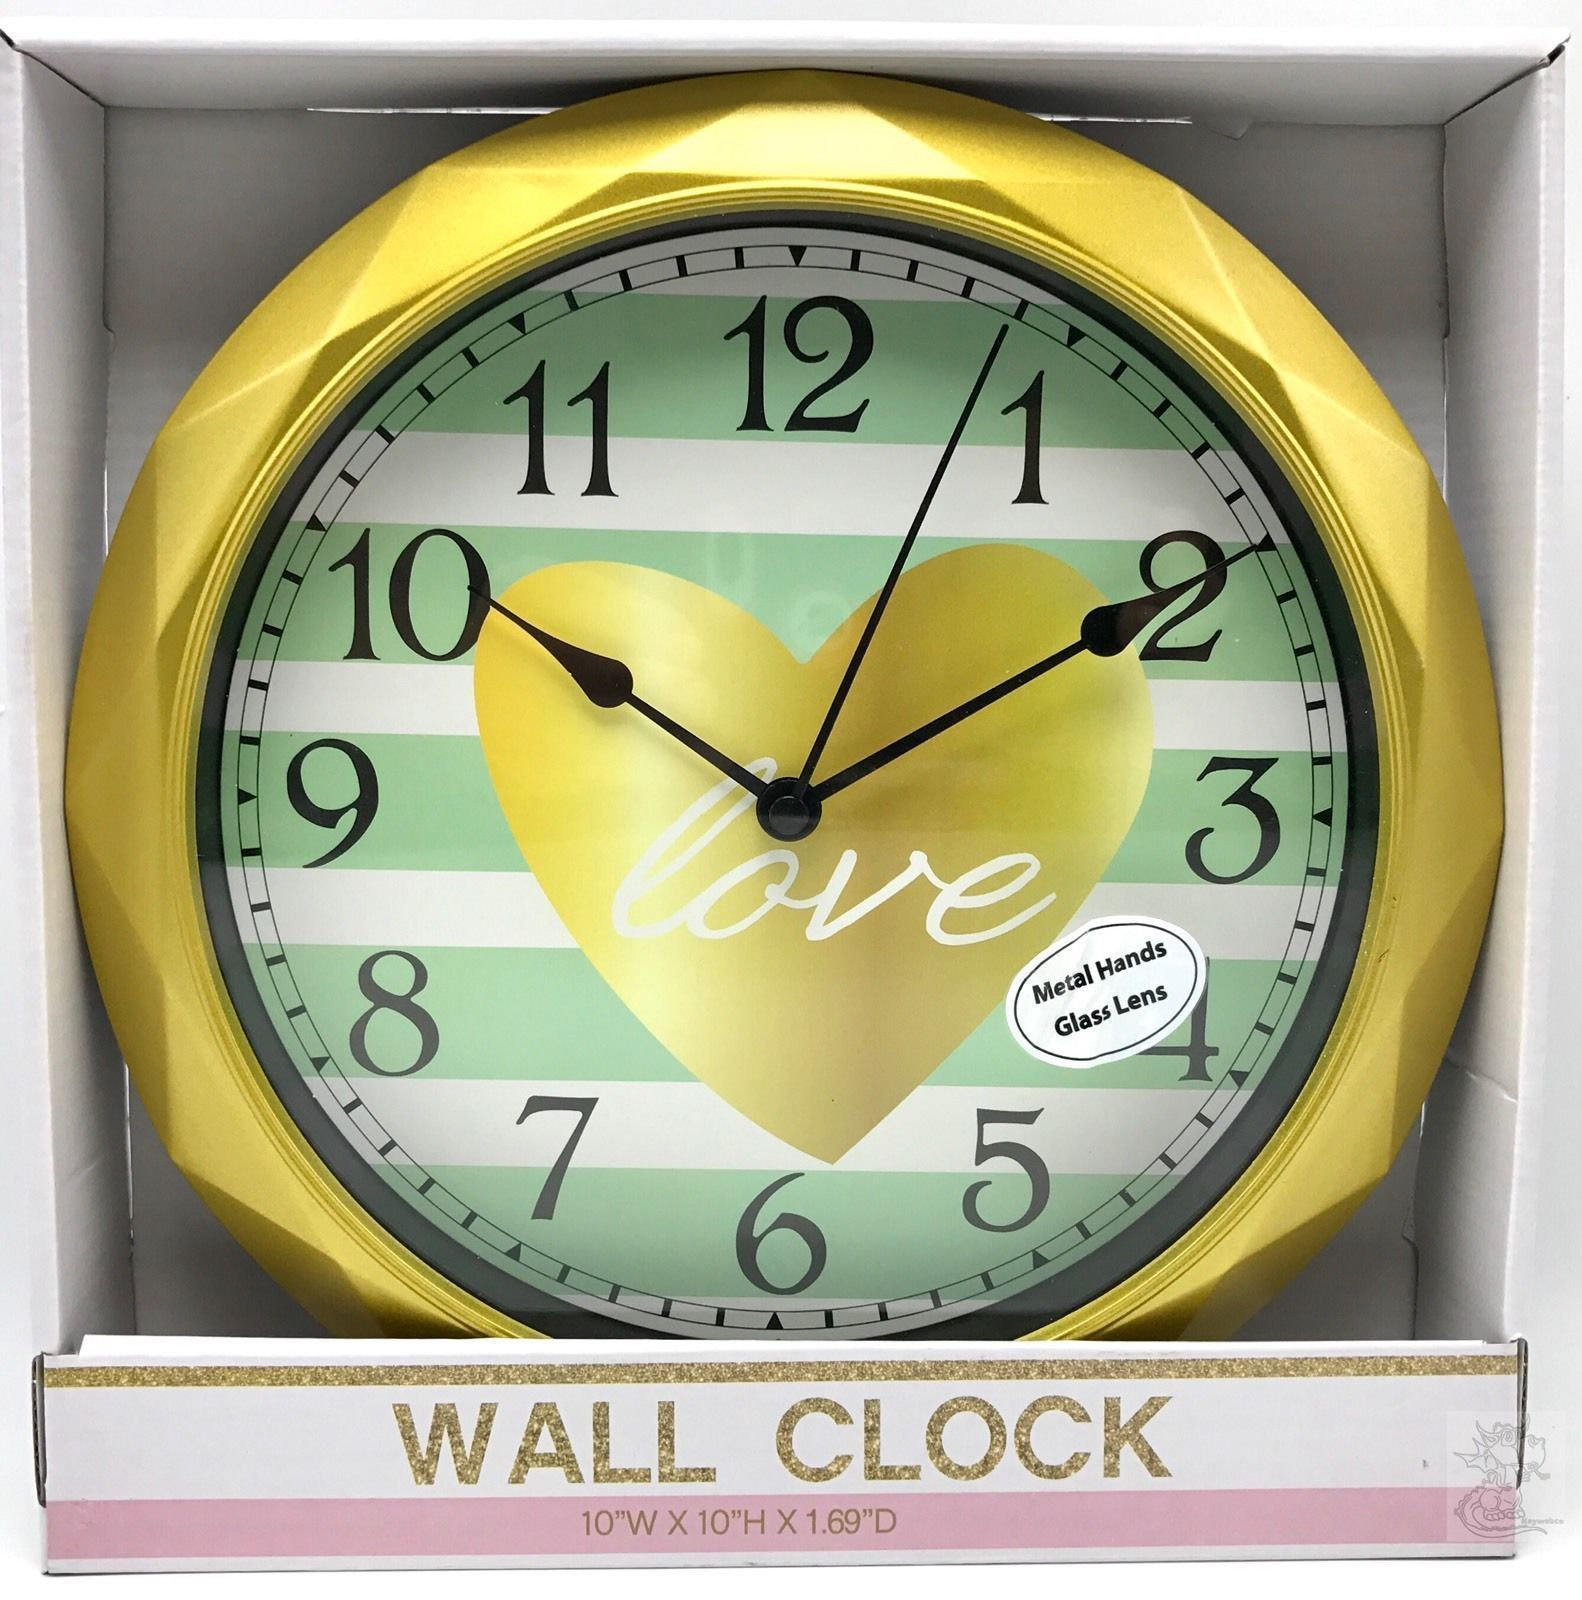 Wall Clock White 8.78 inch Sterling Noble Glass Lens New Sterling ...